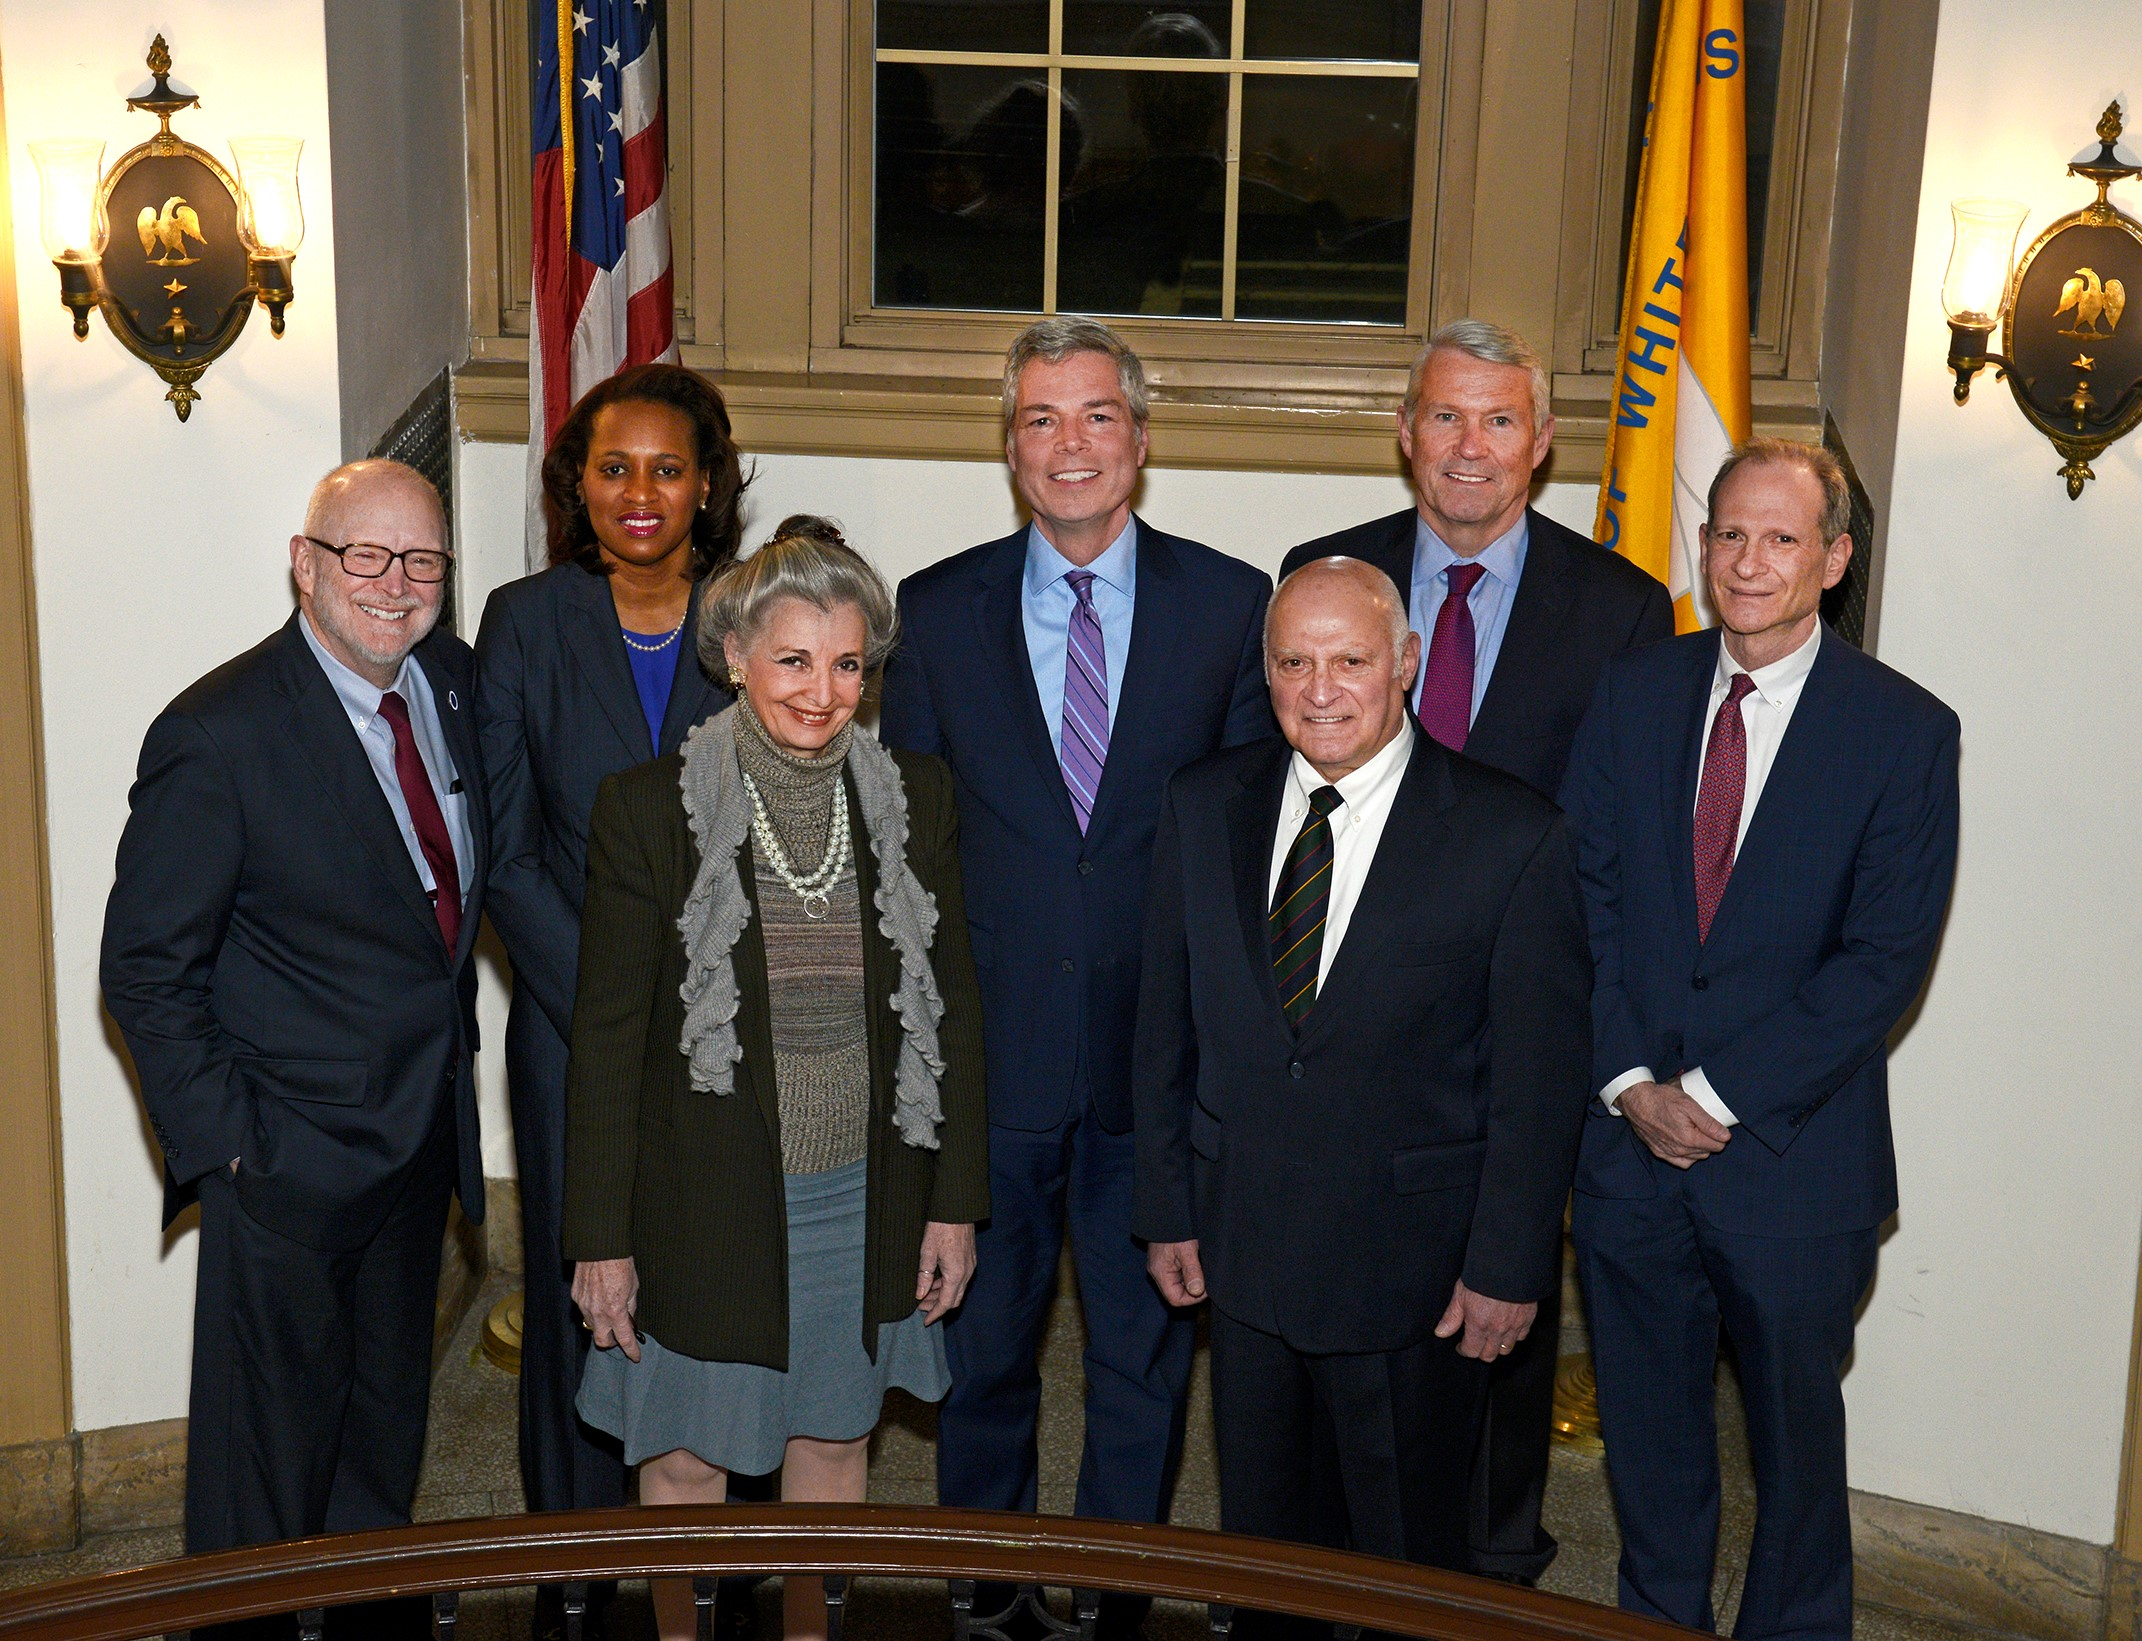 Seven members of the Common Council